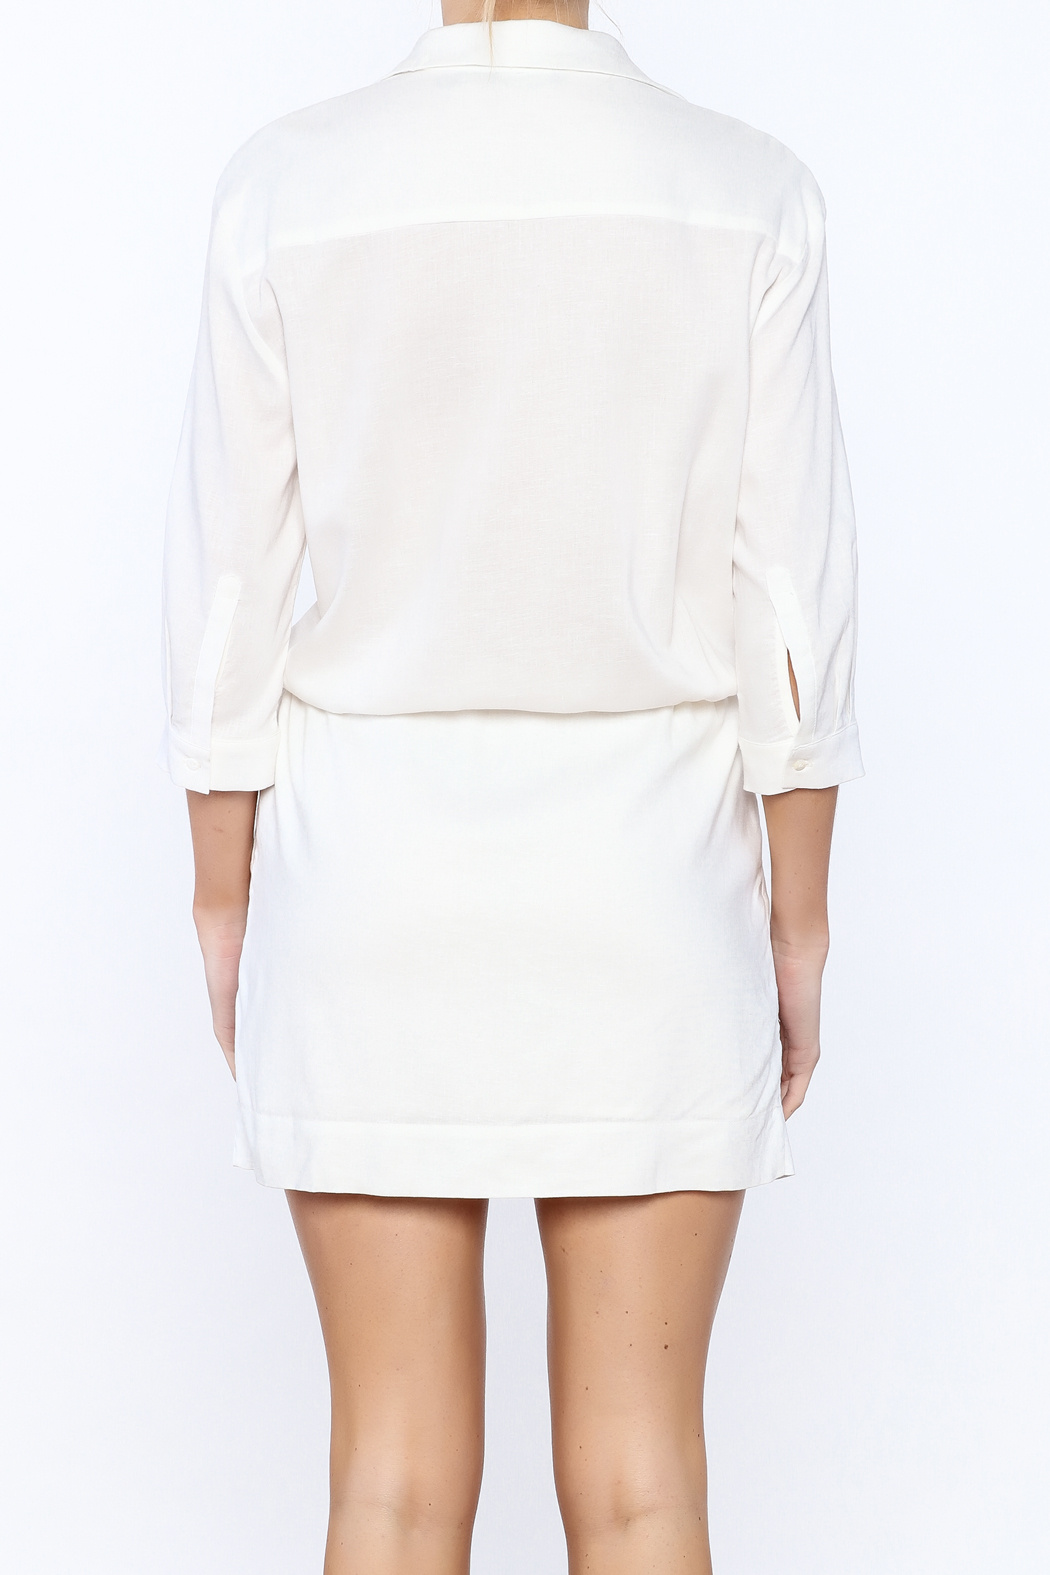 Zoa White Sheath Dress - Back Cropped Image